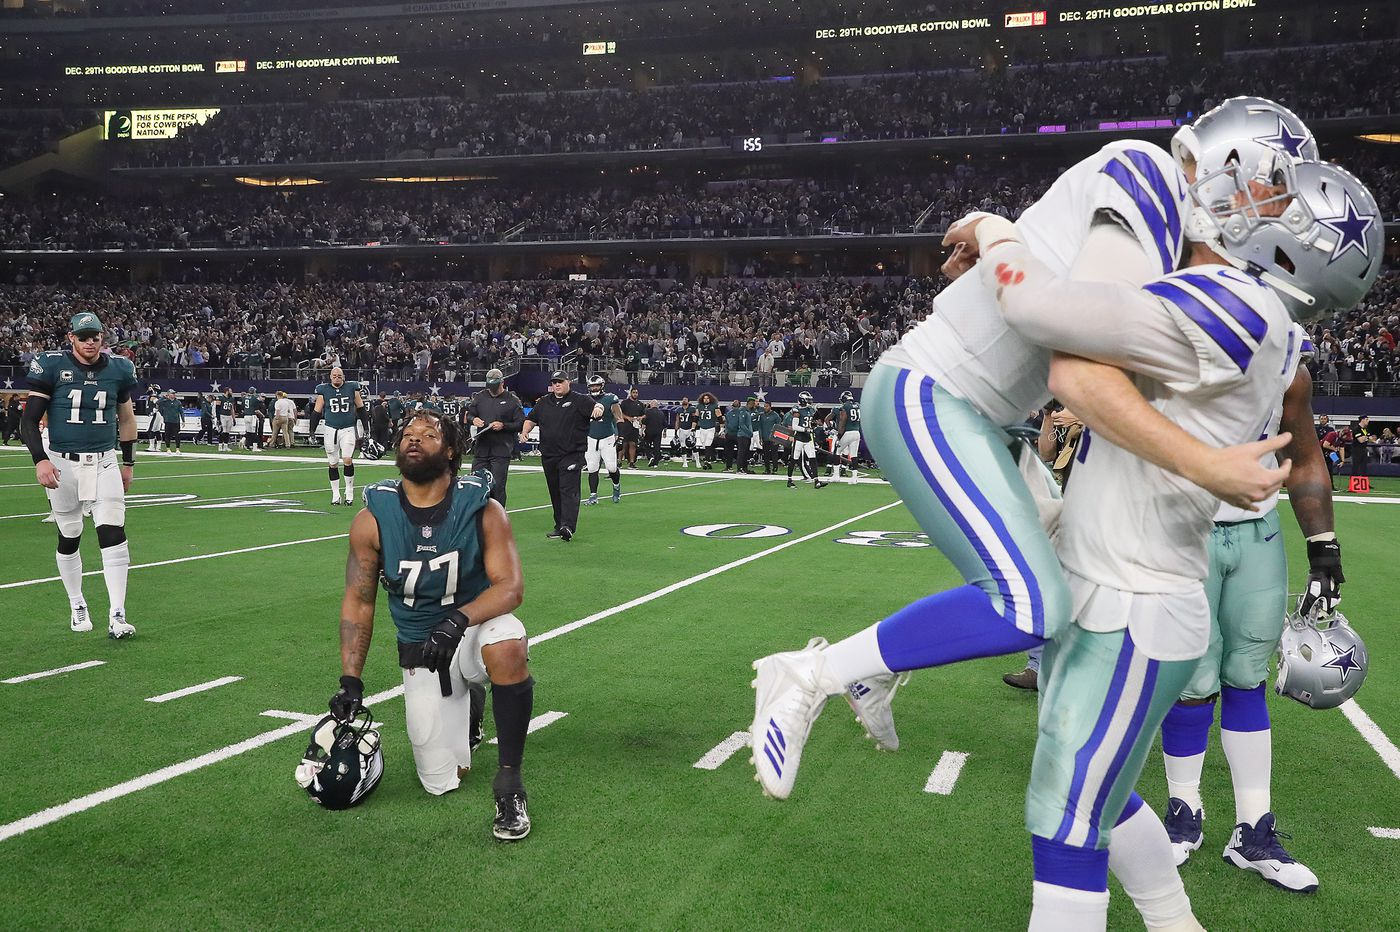 The Cowboys choked twice against the Eagles, but they didn't choke enough | Marcus Hayes